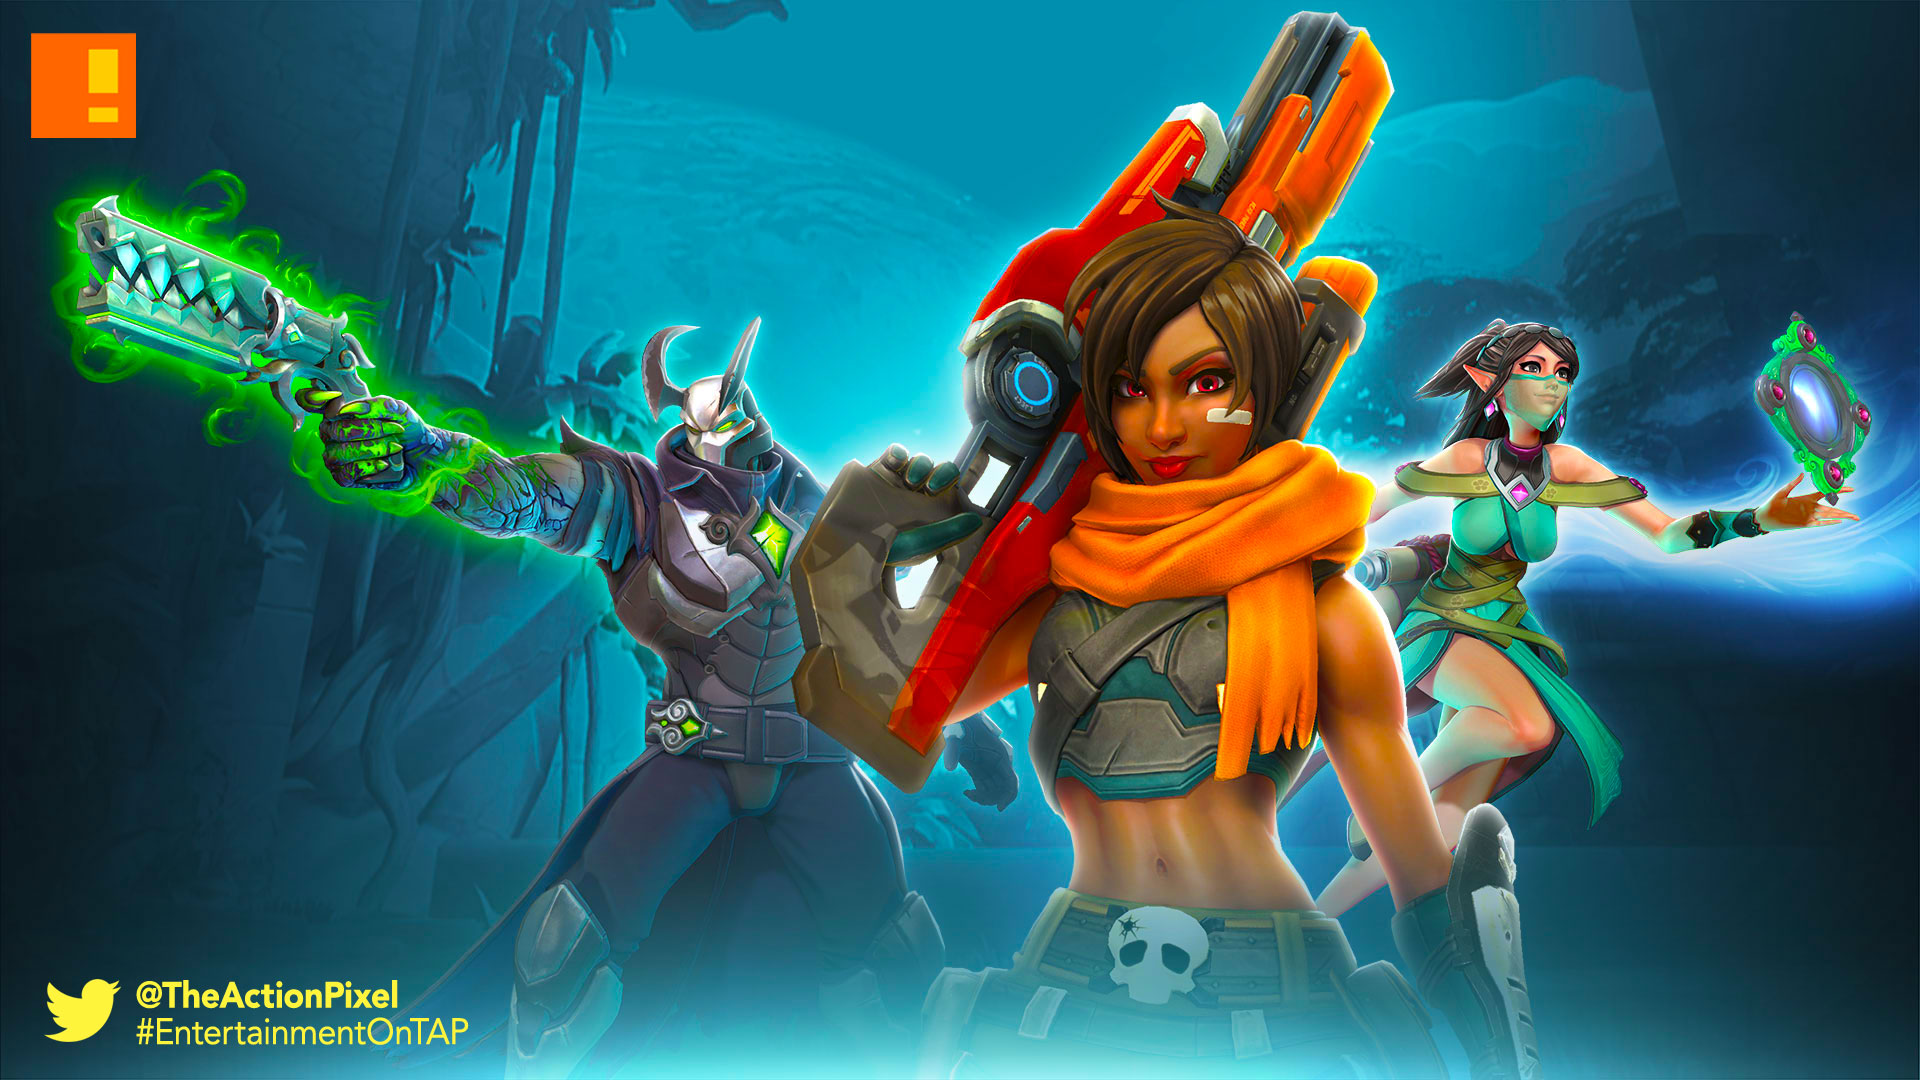 paladins, closed beta, beta, trailer, free, card mastery, champions of the realm